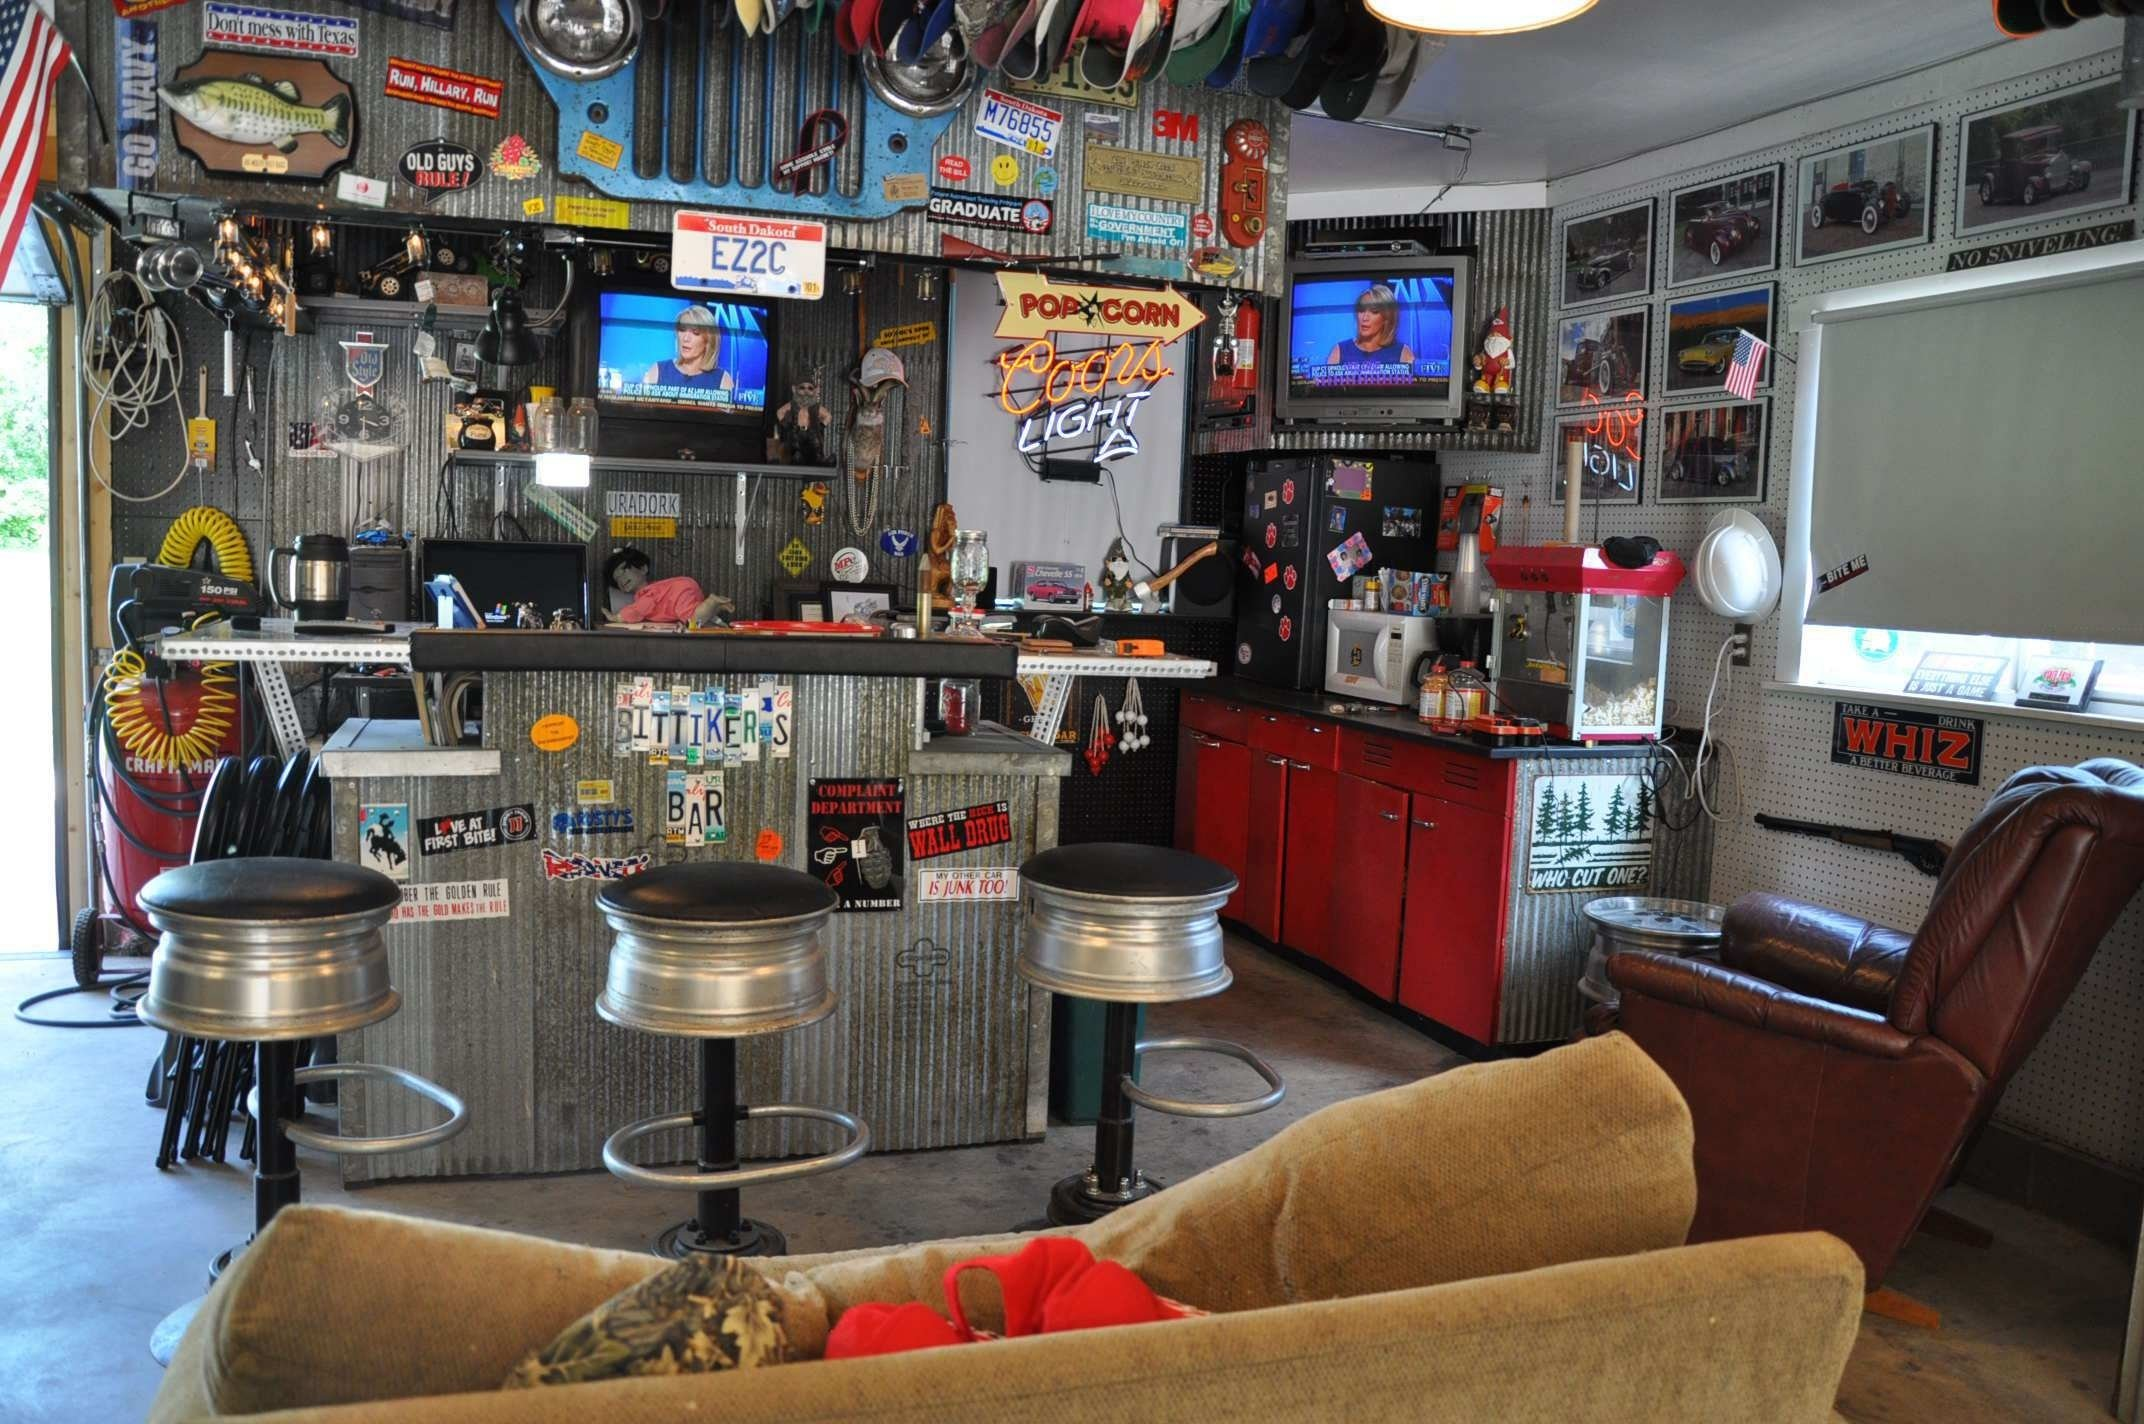 10 Pretty Man Cave Ideas On A Budget shocking wondrous your lighting decor in interior man basement wet 2020